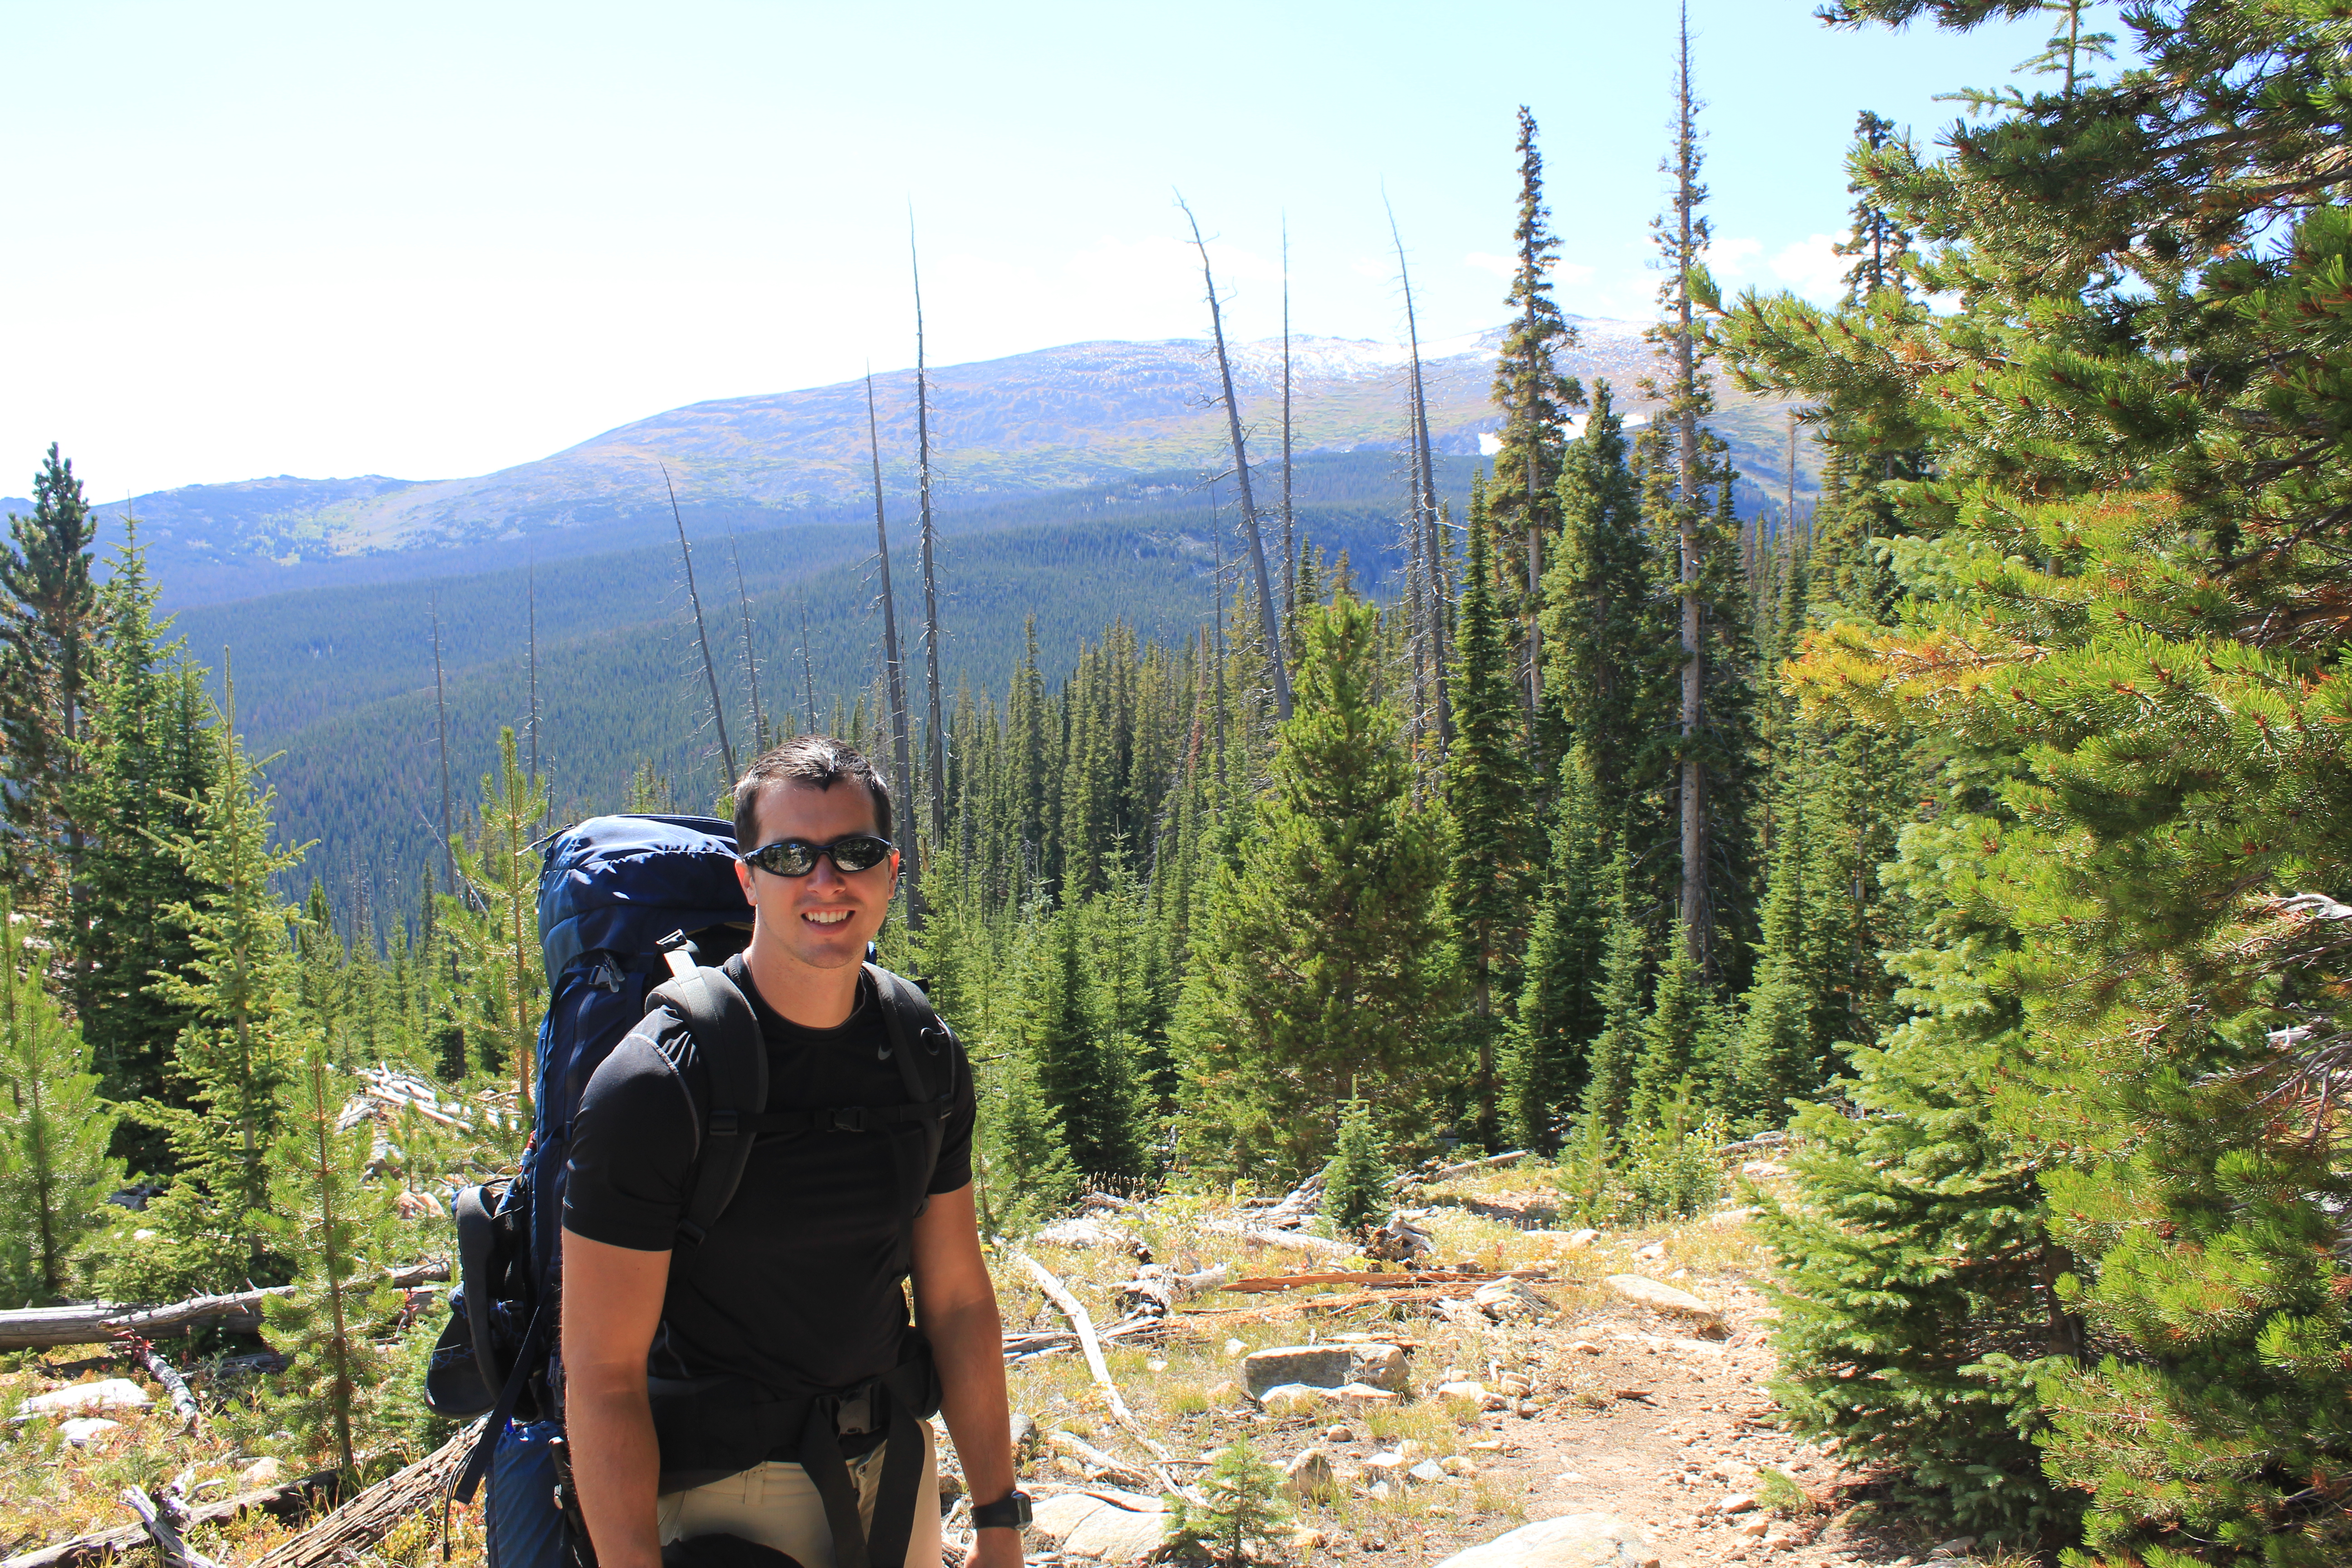 Comanche Peaks Wilderness backpacking